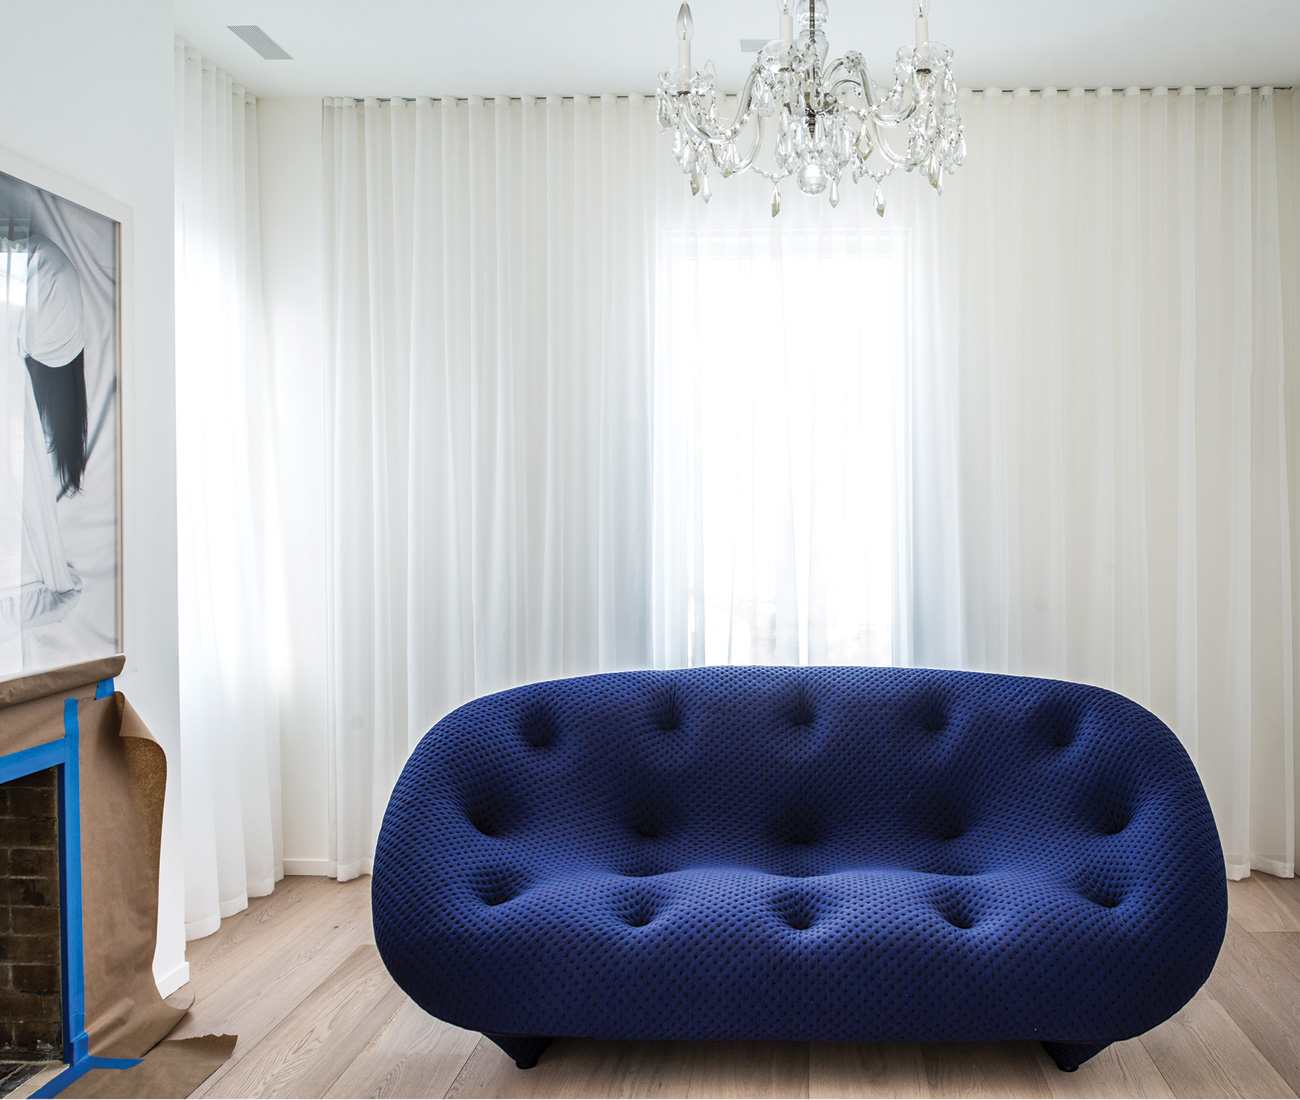 Ligne Roset's Ploum sofa by the Bouroullecs occupies the centre of the master suite's dressing room.